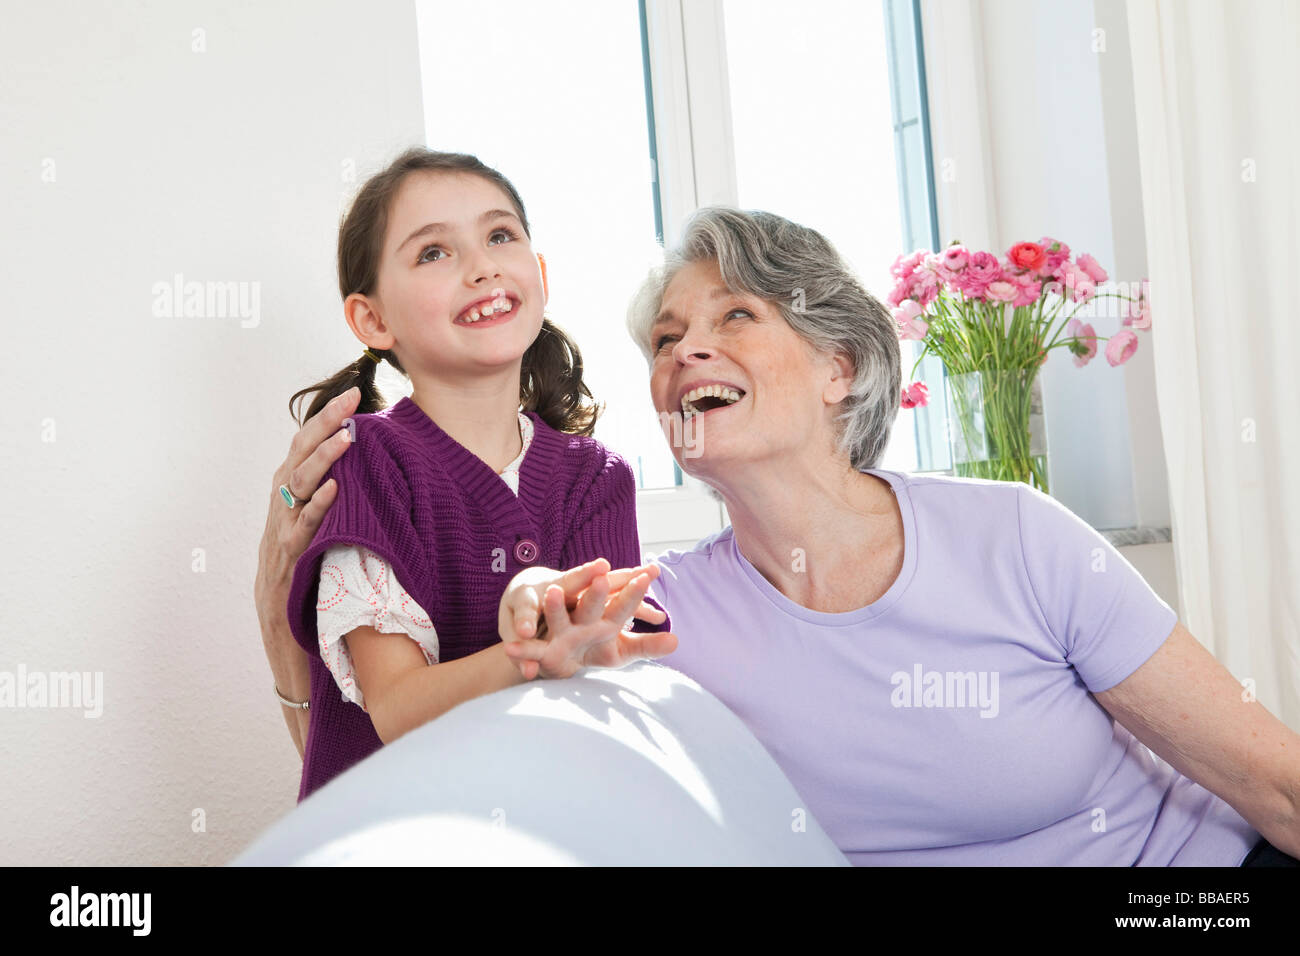 A grandmother and granddaughter spending time together - Stock Image